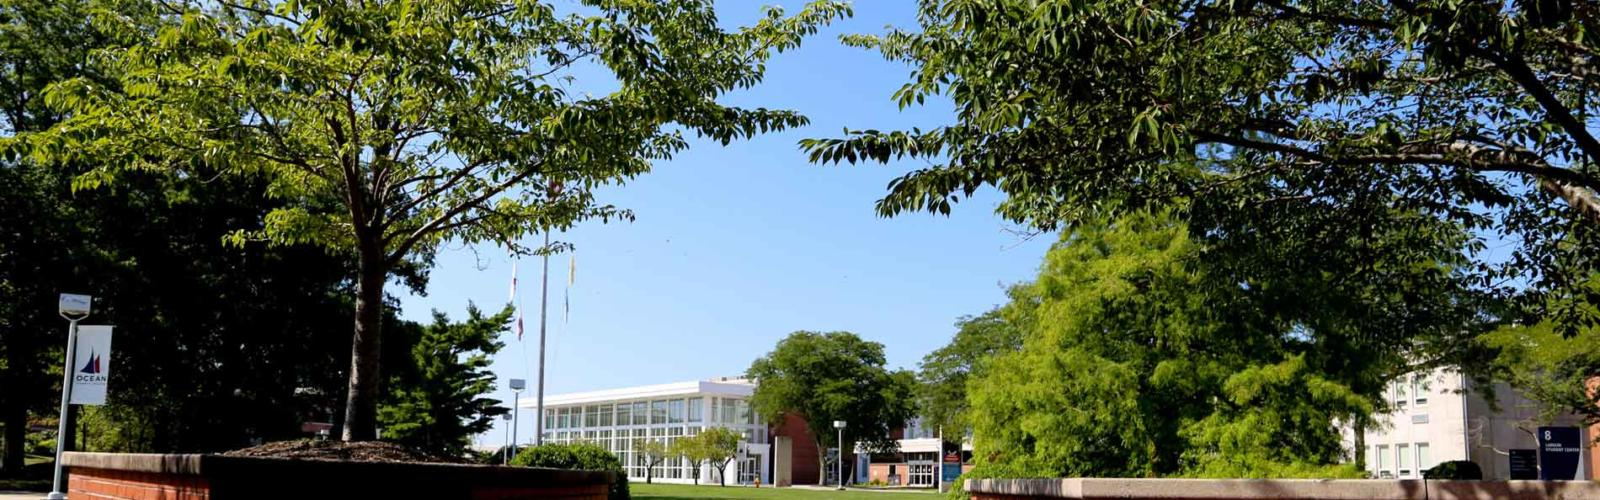 pathway on ocean county college campus with trees